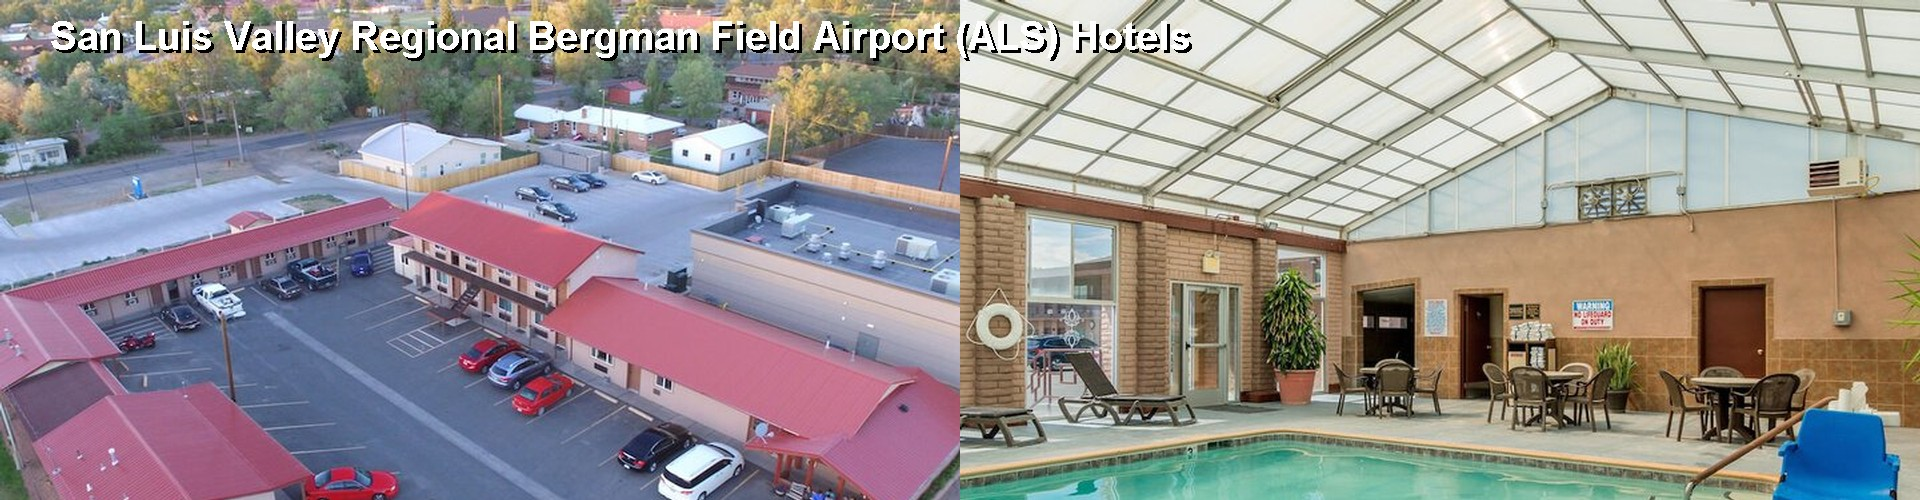 5 Best Hotels near San Luis Valley Regional Bergman Field Airport (ALS)